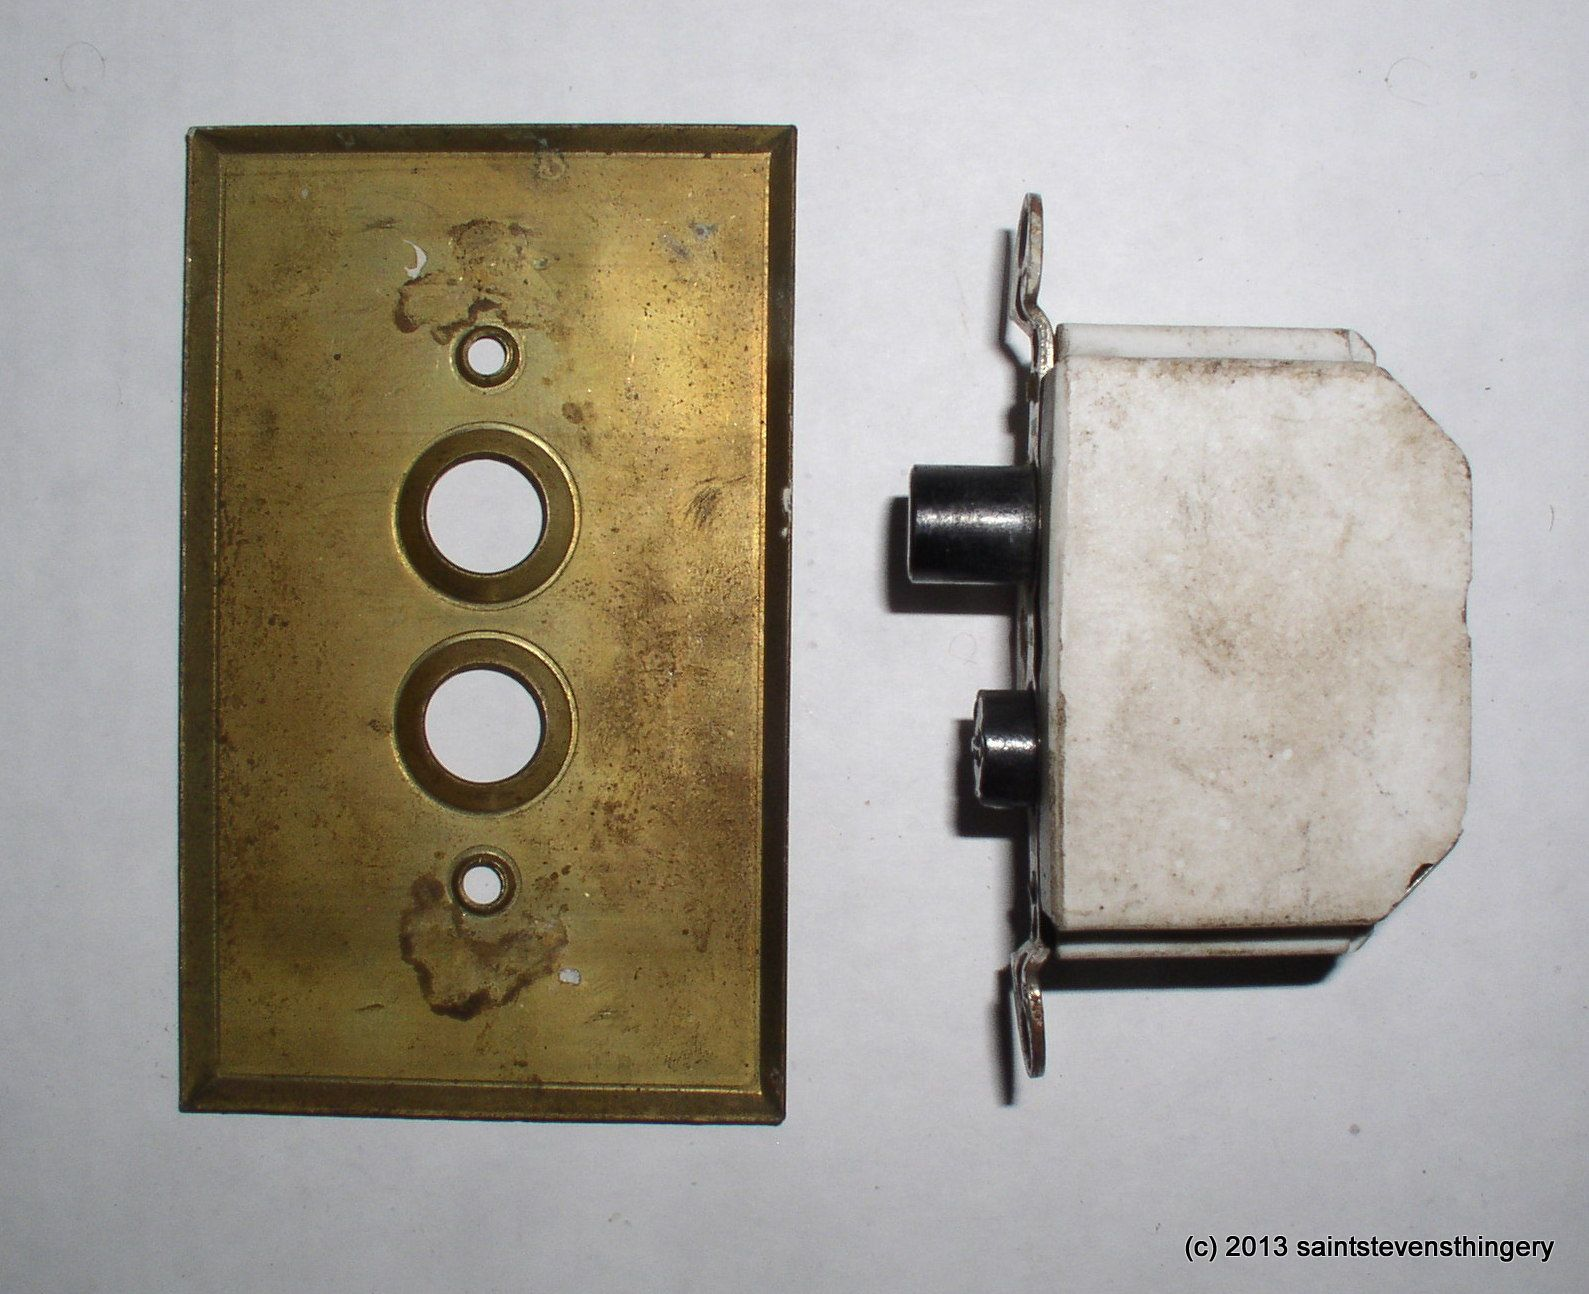 Vintage Light Switch Plate Covers 1918 Light Switches Vintage Arrow Push Button Light Switch